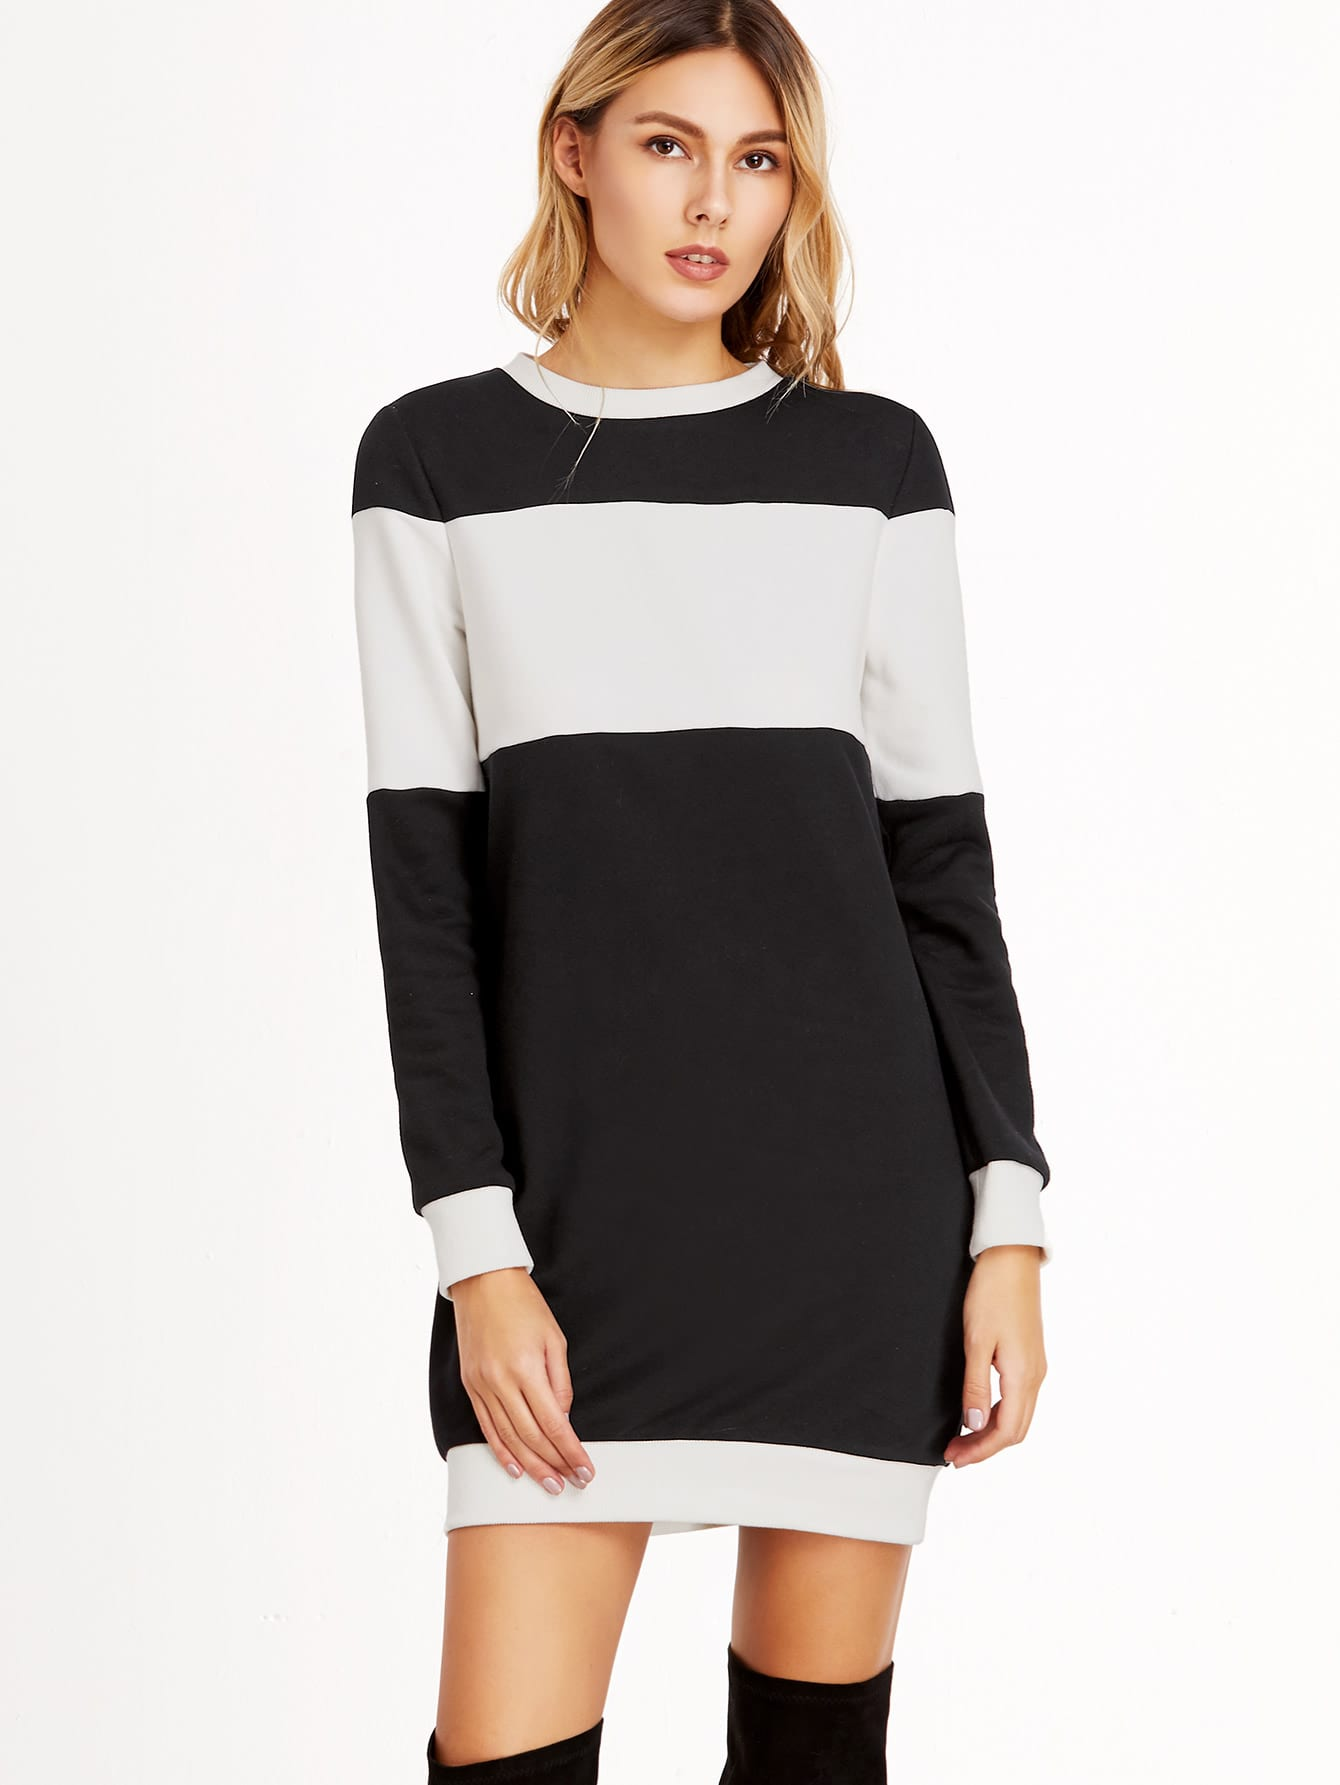 Black And White Ribbed Trim Sweatshirt Dress dress161111706